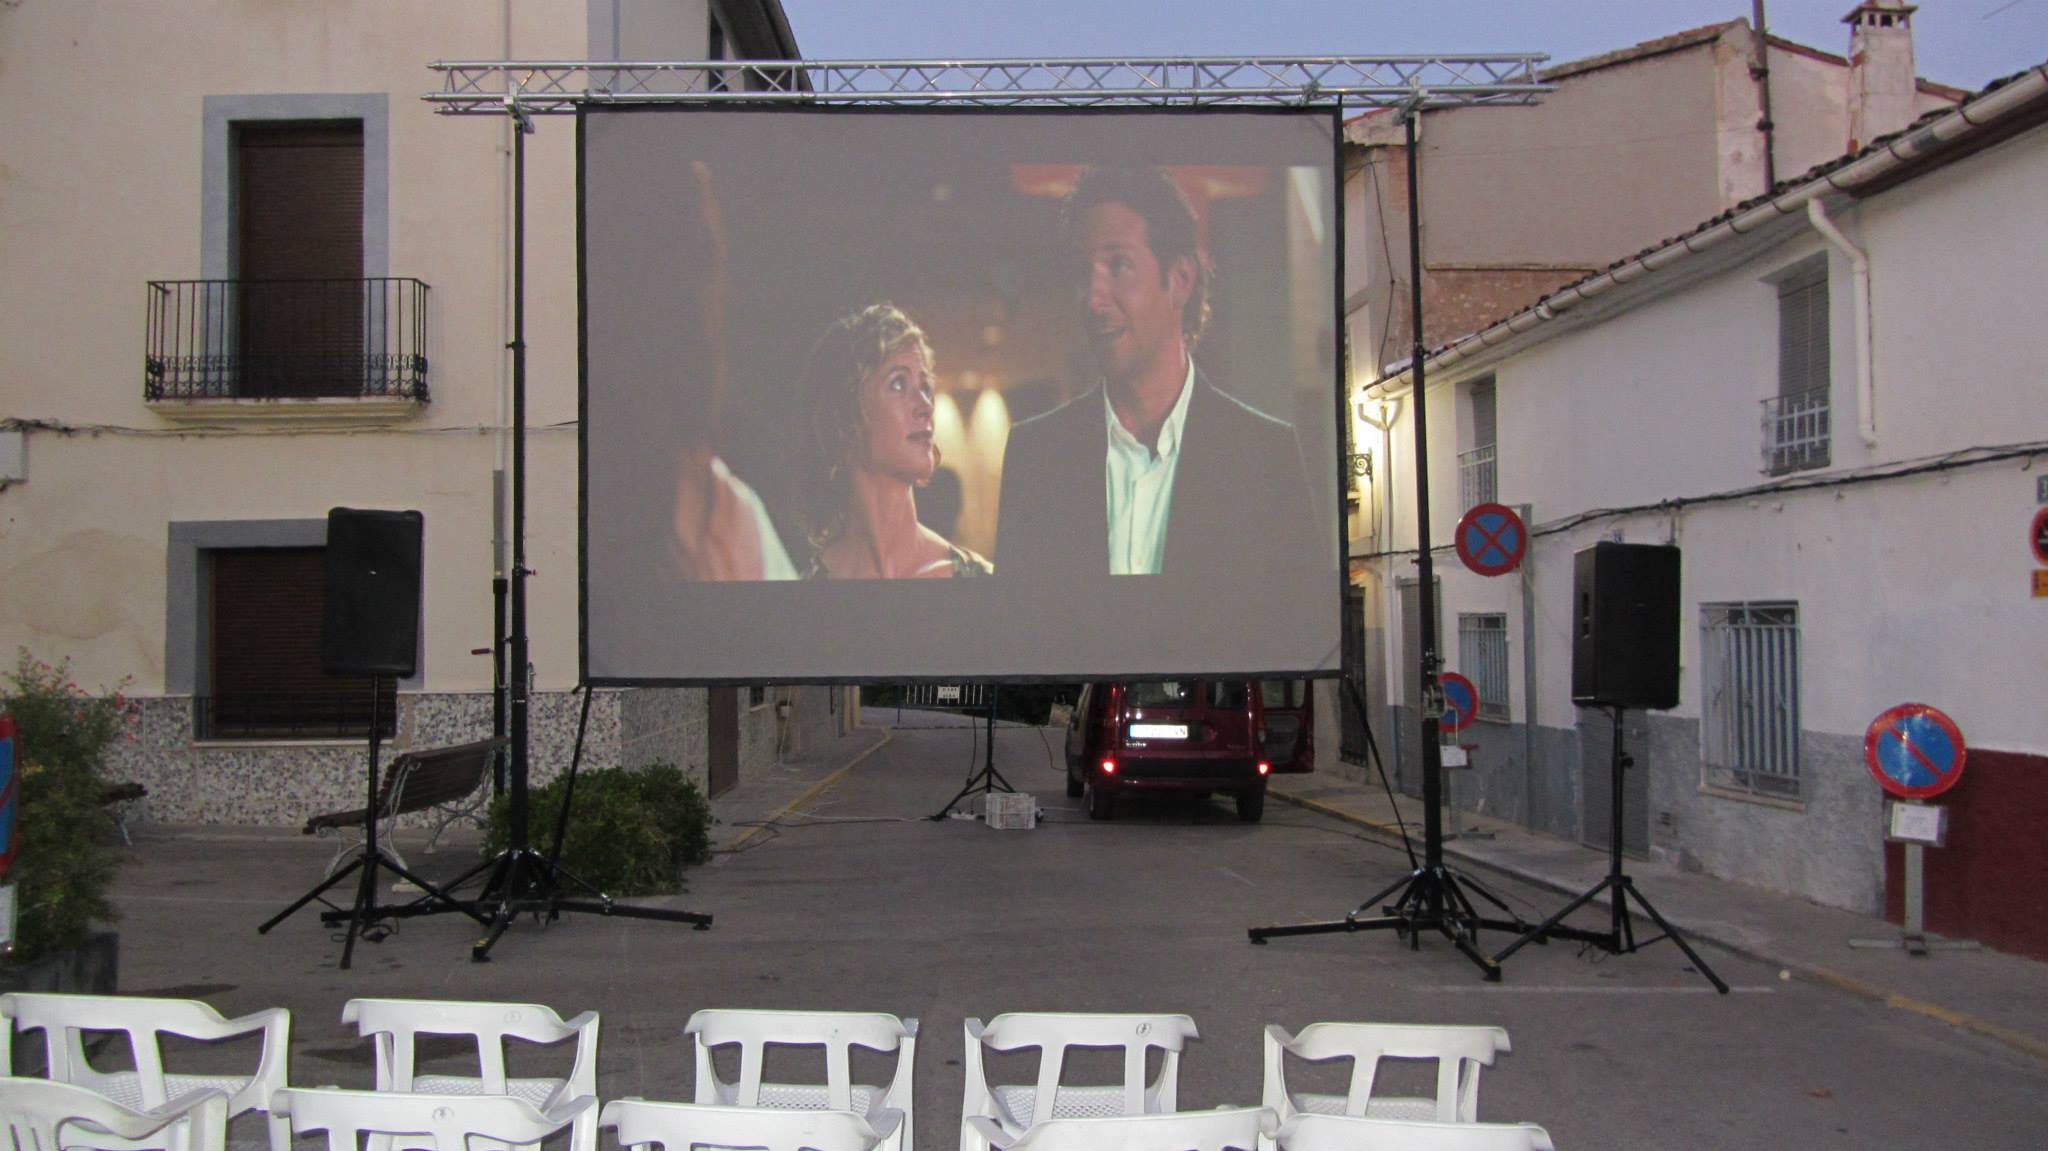 Summer Cinema @ Benamer, Alicante (Spain)